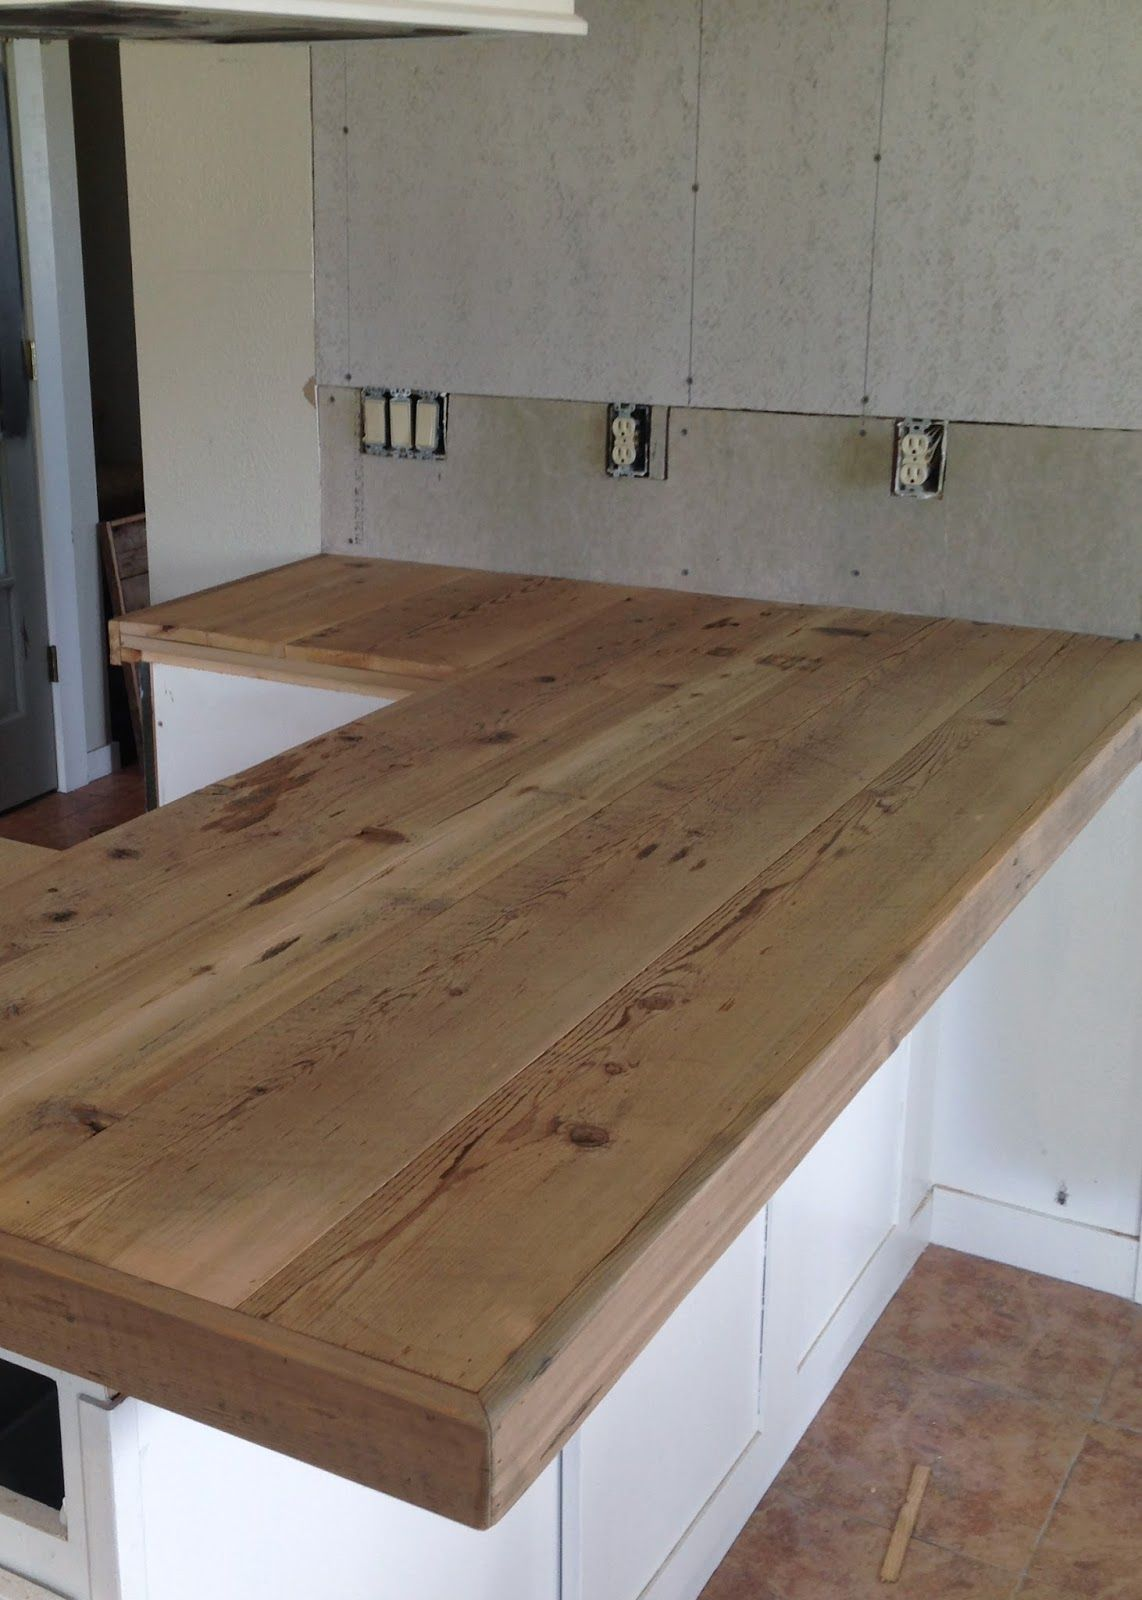 DIY Reclaimed Wood Countertop | Reclaimed wood countertop and Trim ...